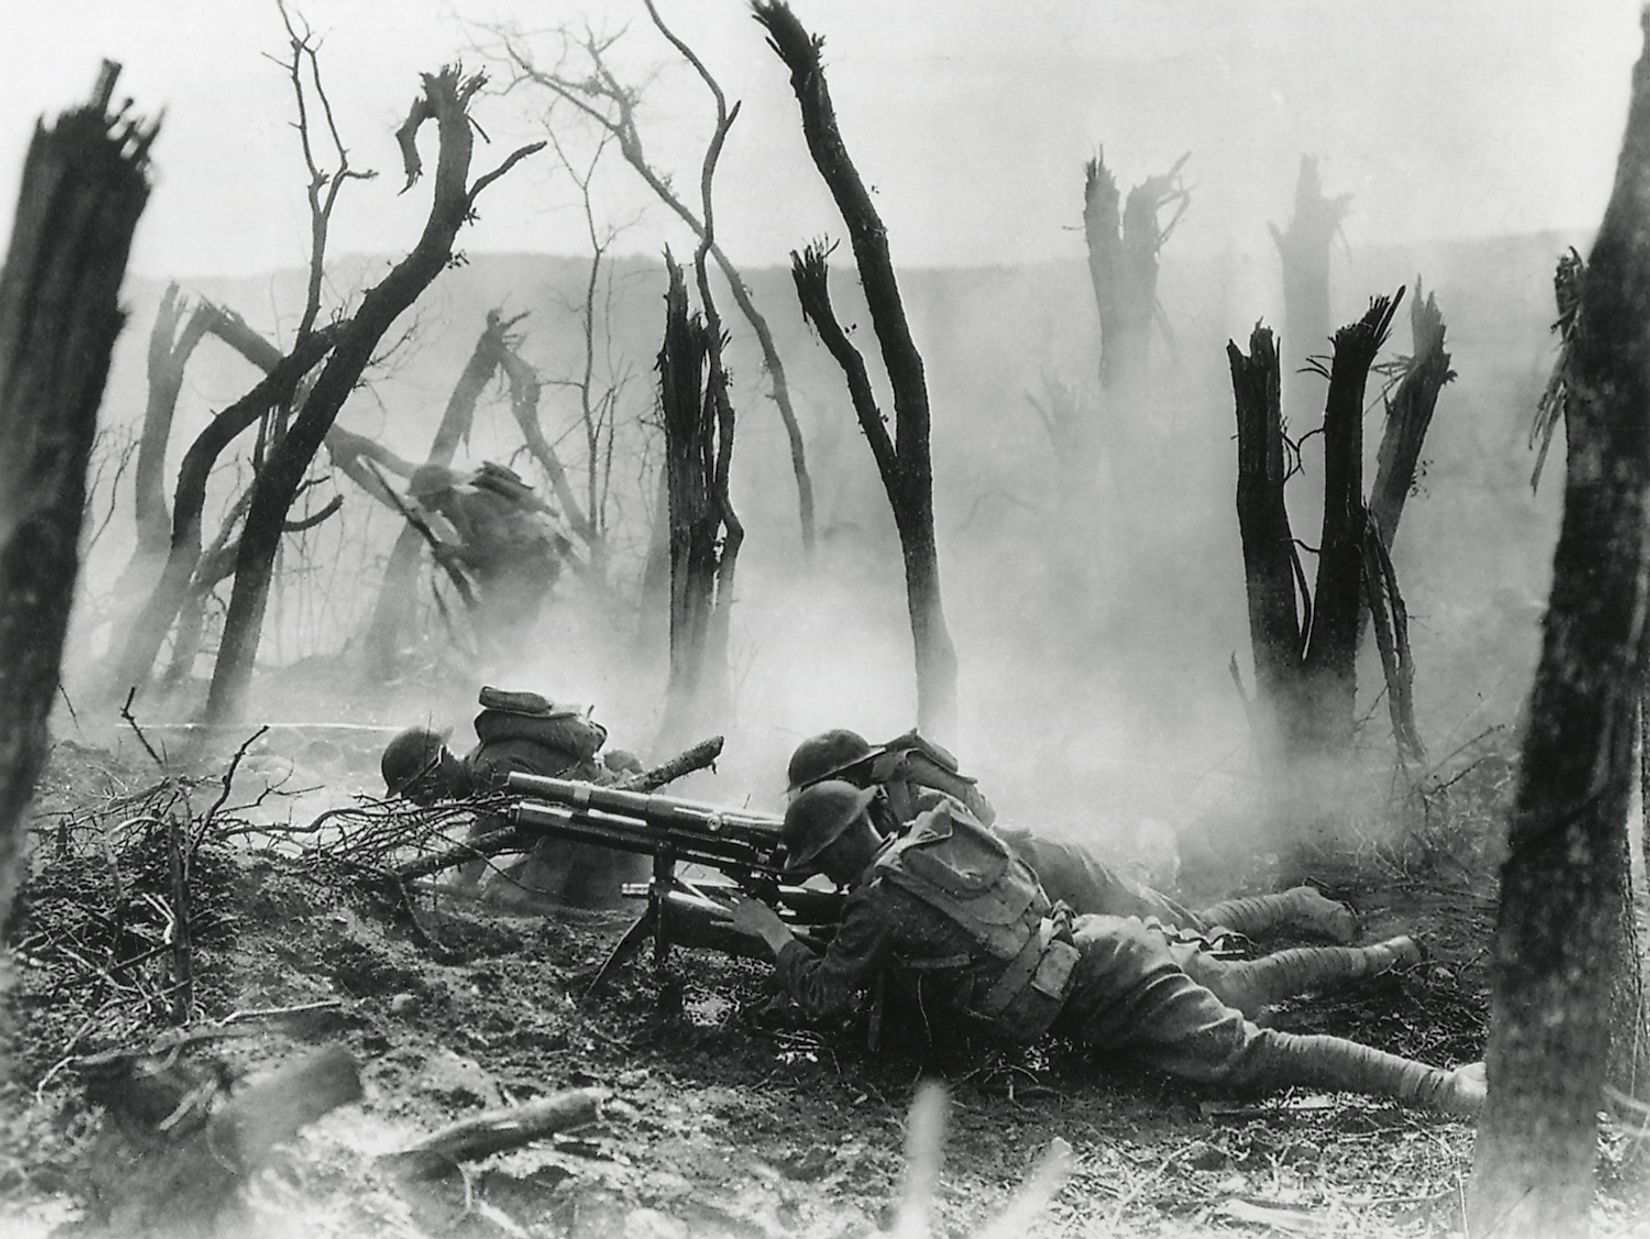 World War 1. American gun crew from the 23rd Infantry, firing a French 37mm cannon in World War I action in Belleau Wood. June 3, 1918. Image source: Everett Collection/Shutterstock.com